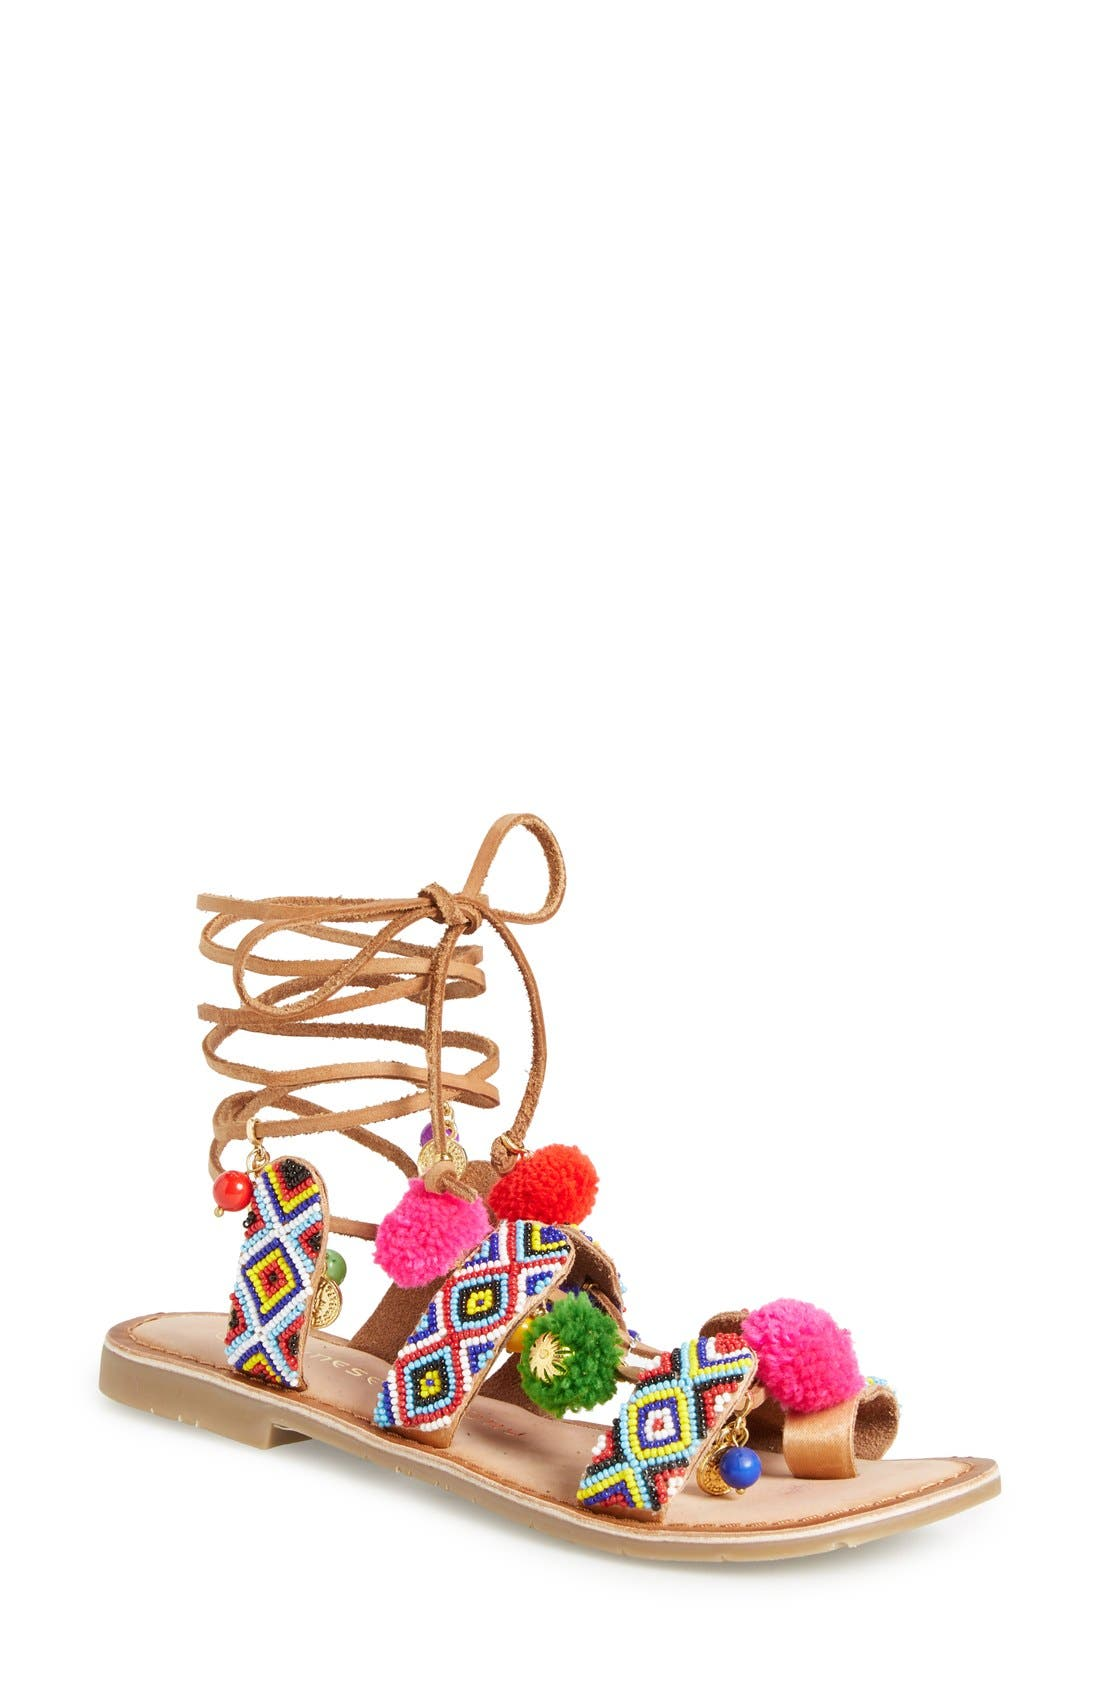 Main Image - Chinese Laundry 'Posh' Embellished Lace-Up Sandal (Women)